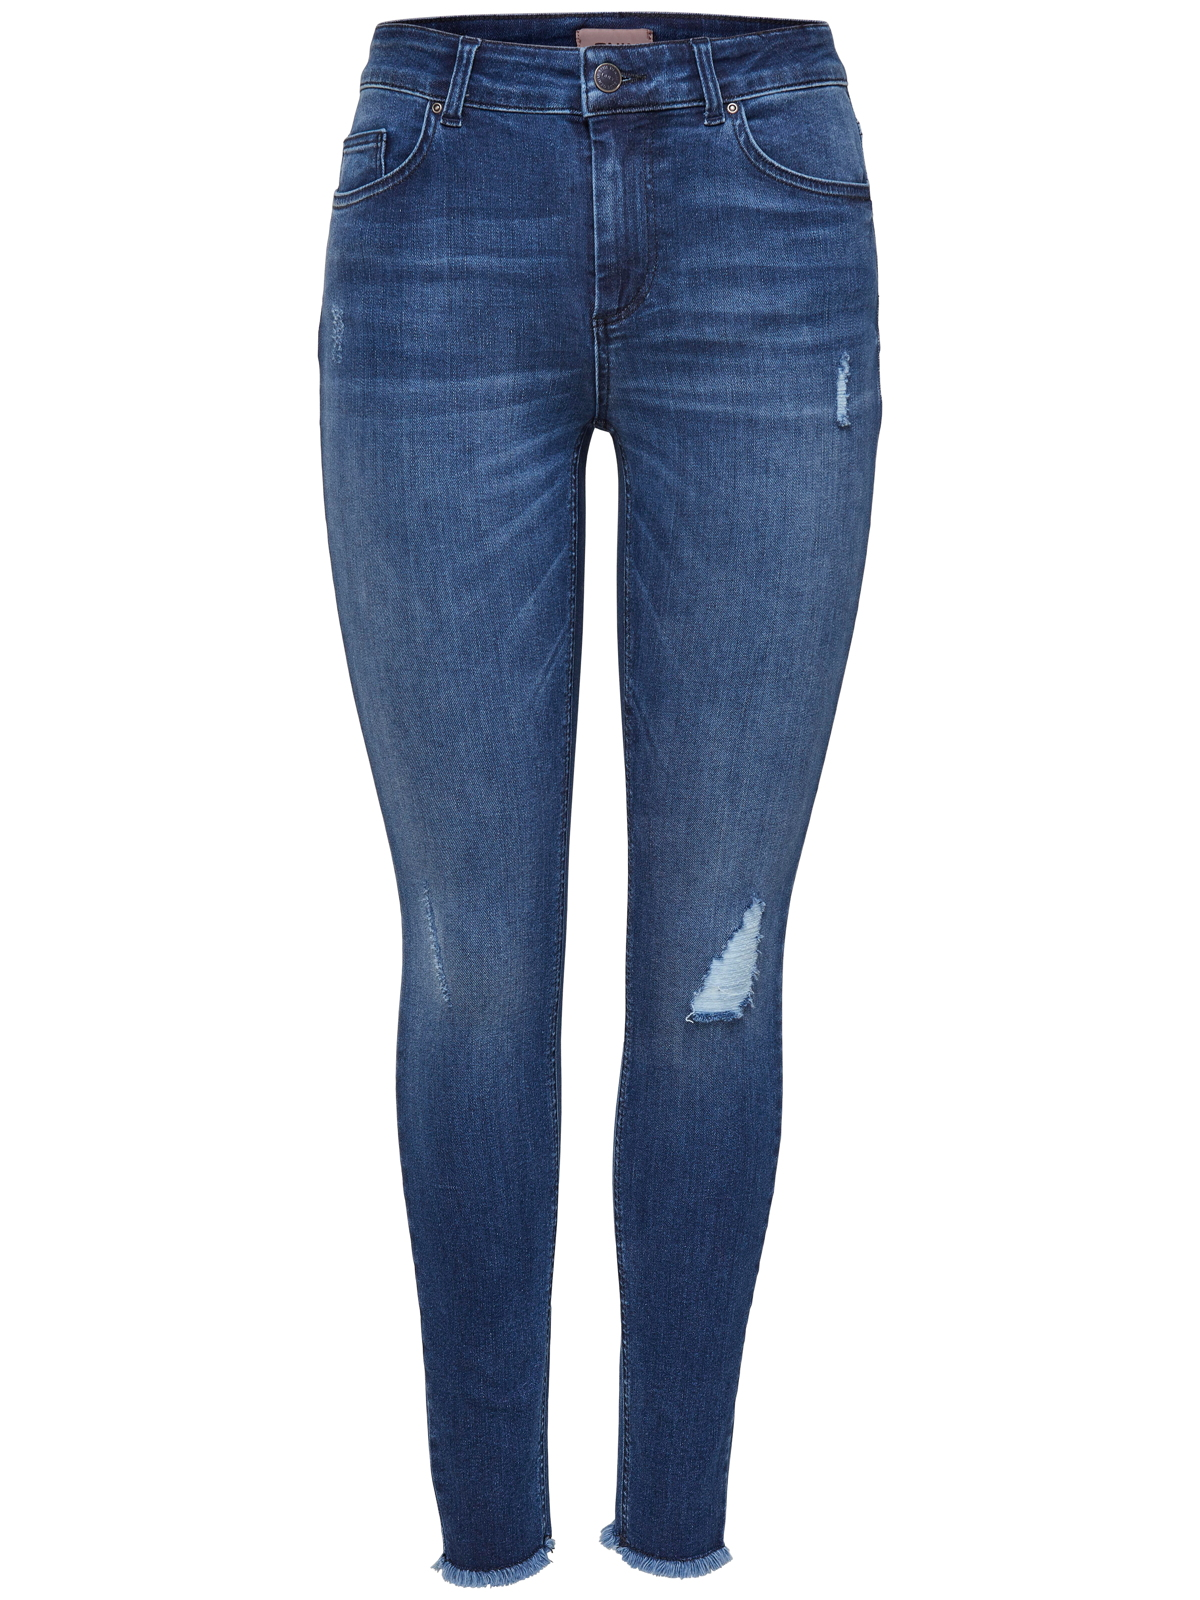 8fde1039132f55 Only Hose Skinny Jeans OnlBlush Mid Ank Raw Jeans Rea2077 Destroyed-Look